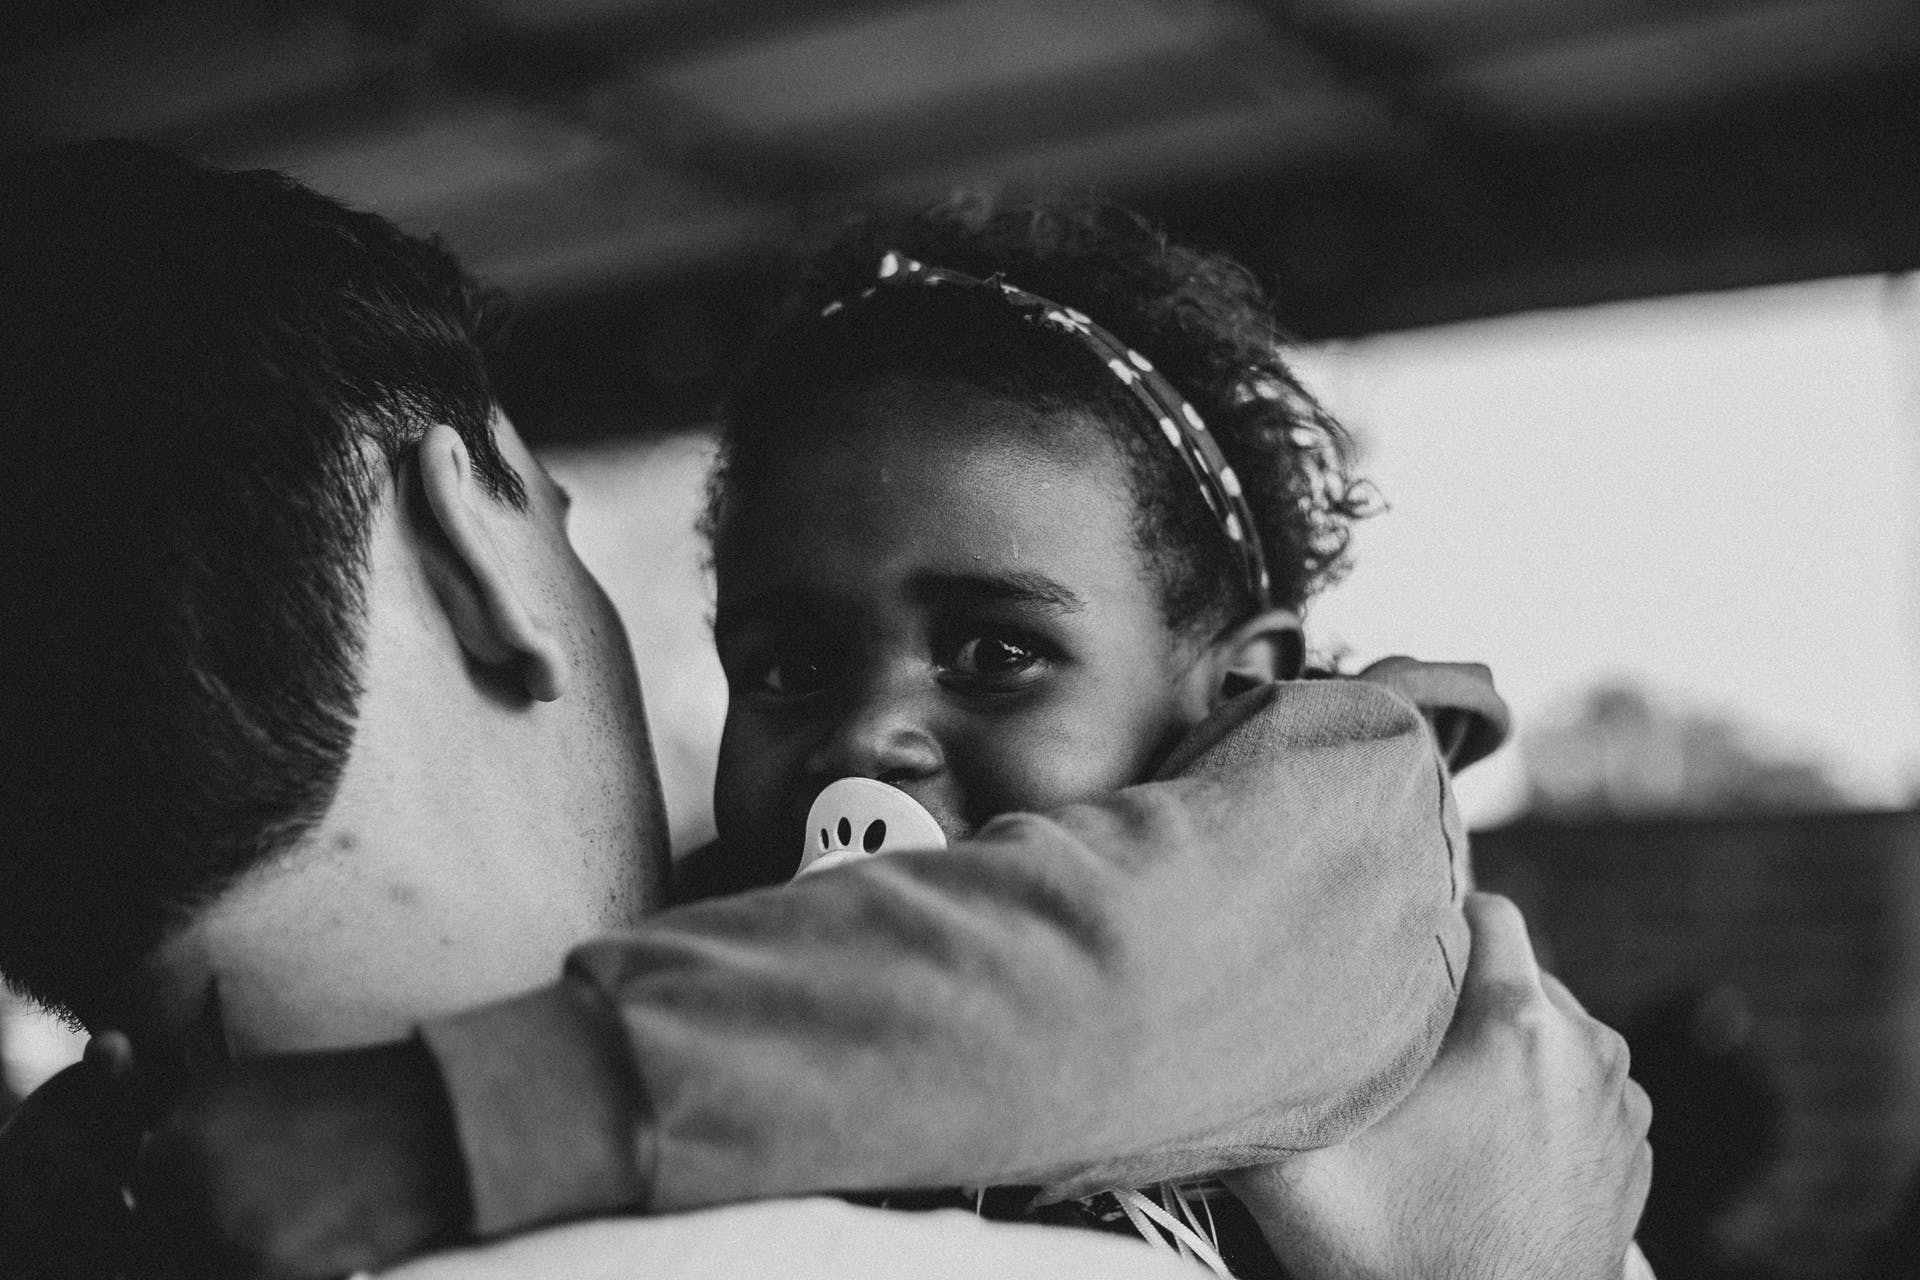 Free stock photo of adoption, afro, b&w, black and white